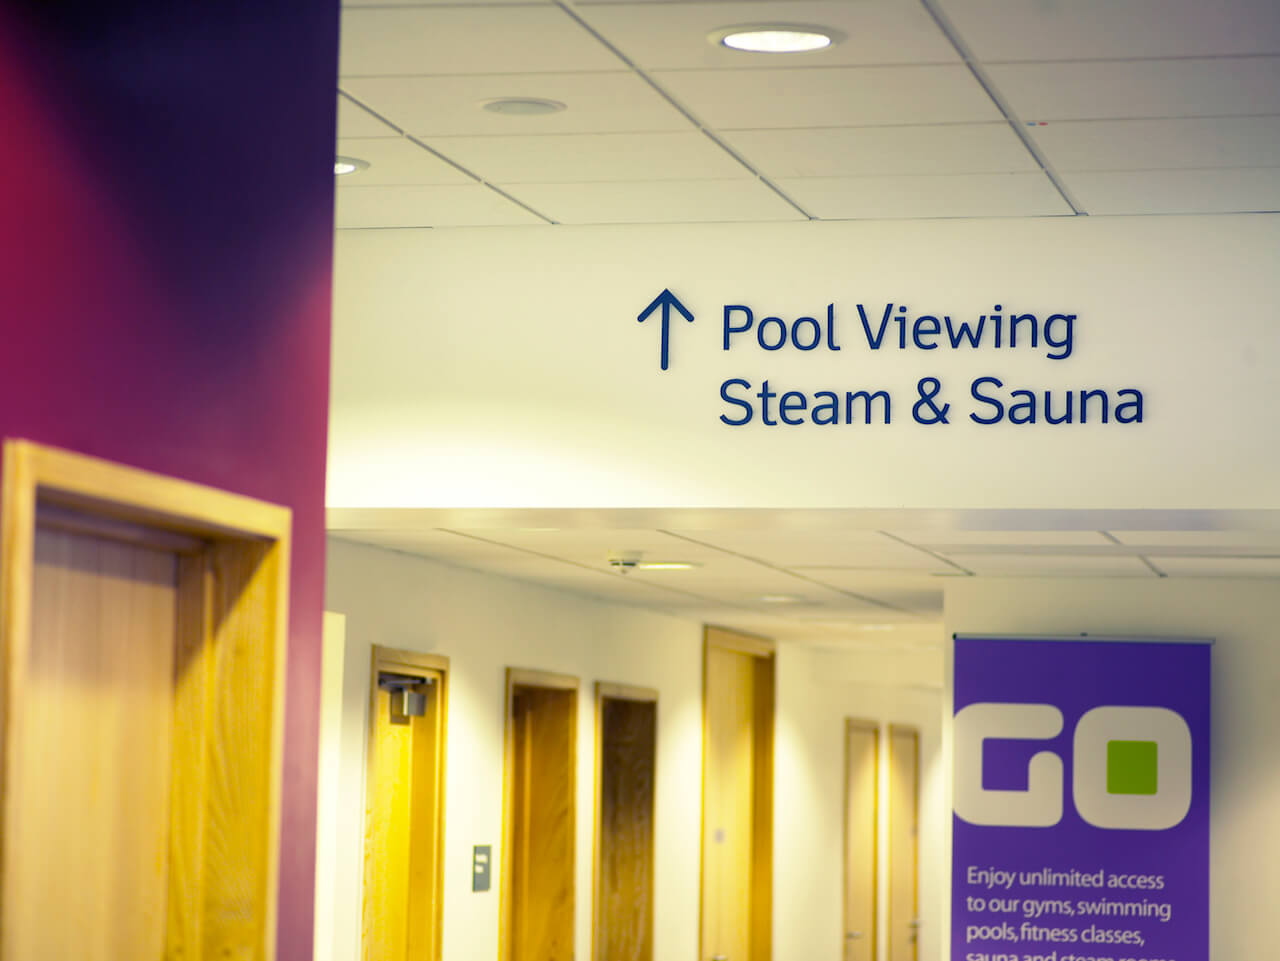 Clear signage and information graphics indicate areas within a swimming pool facility